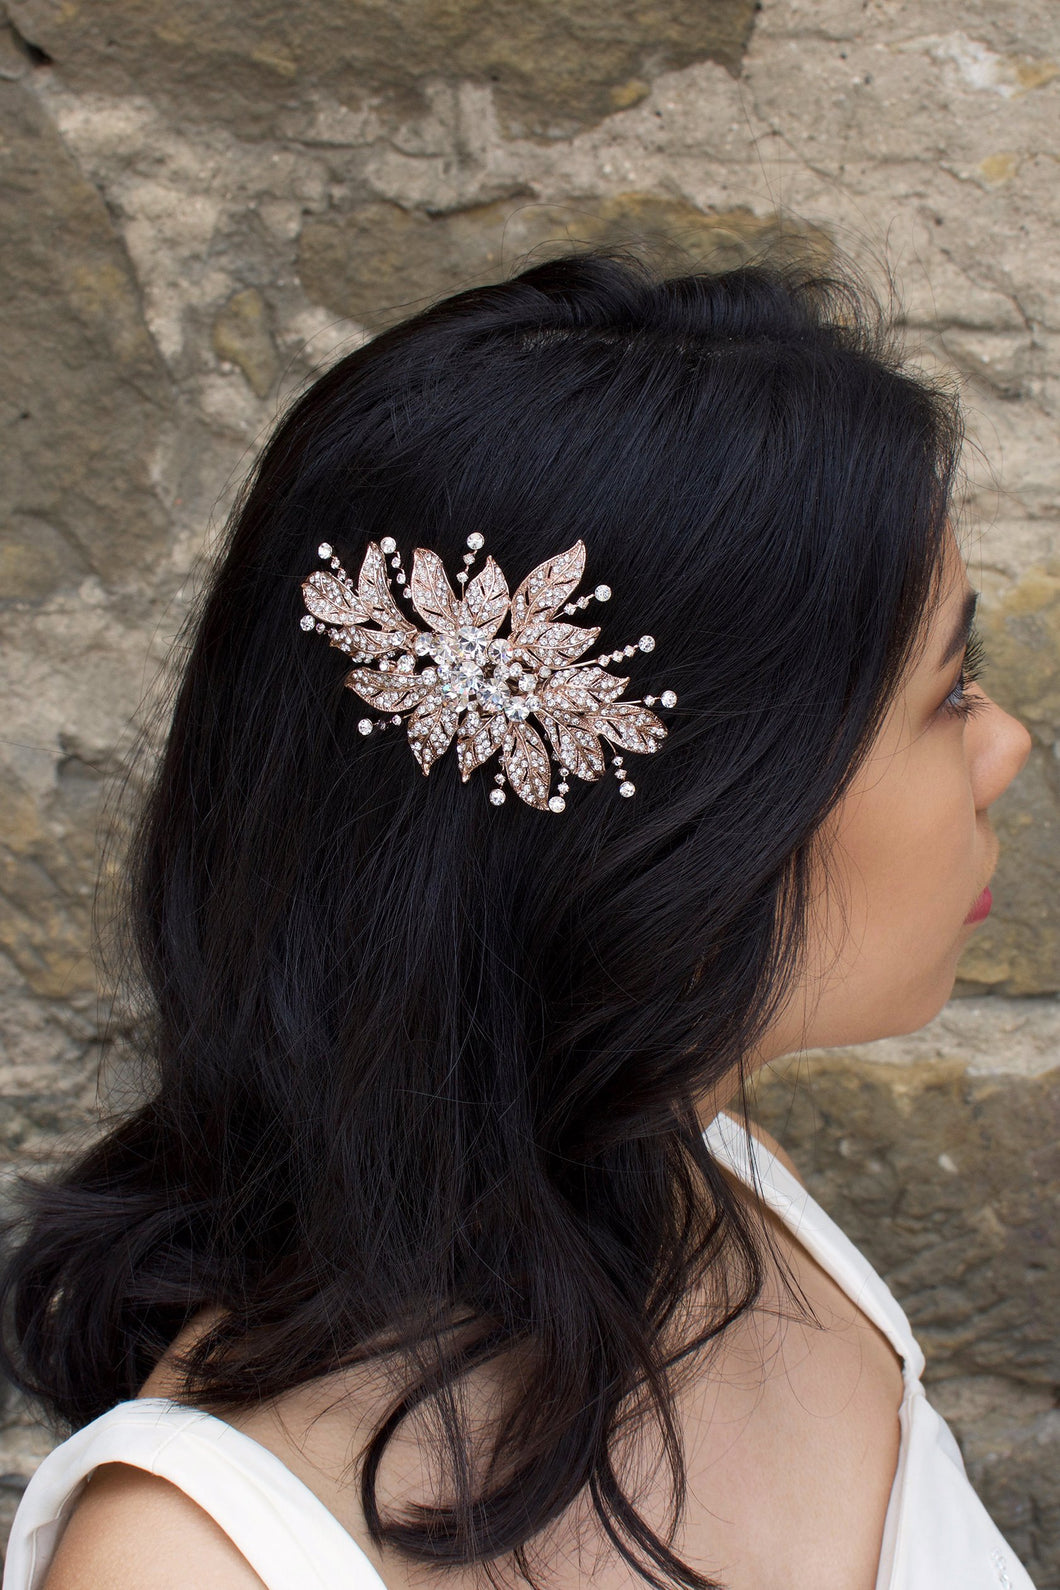 A back haired model wears a rose gold flower bridal side comb on the side of her head. A stone wall is the backdrop